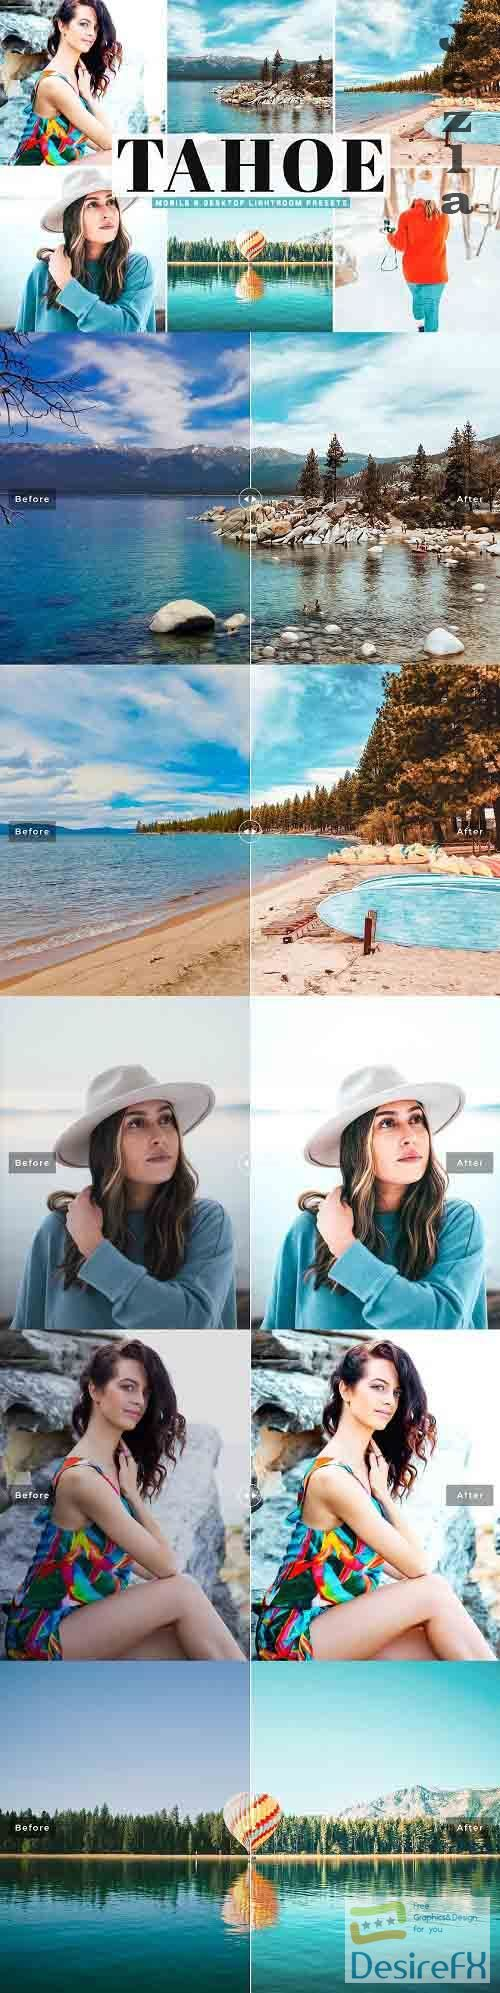 Tahoe Pro Lightroom Presets - 5166241 - Mobile & Desktop